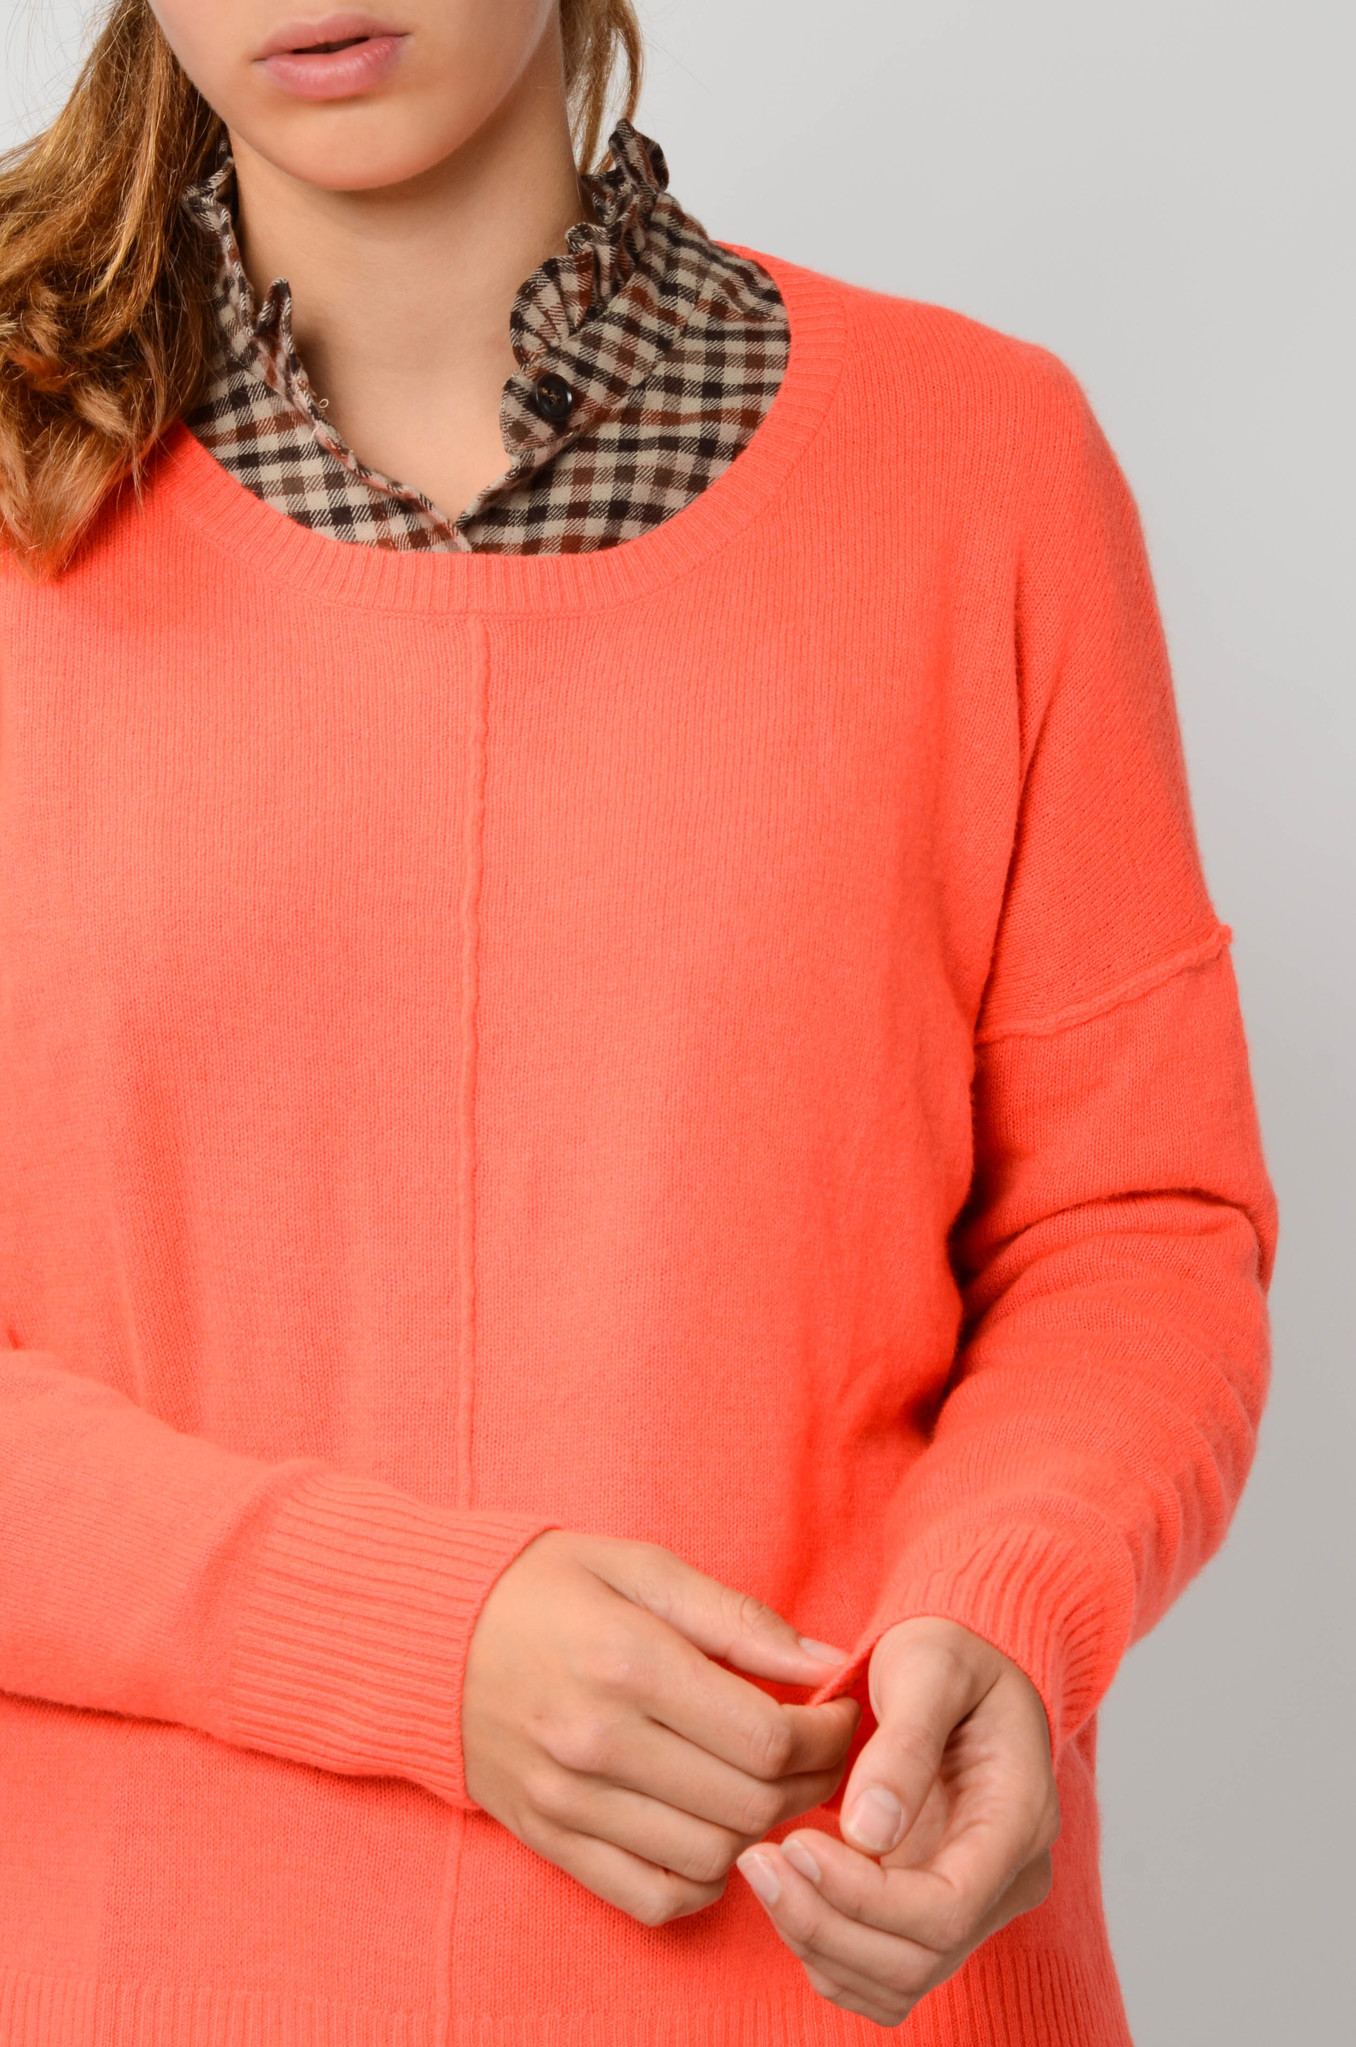 KENZA SWEATER IN NEON CORAL-5